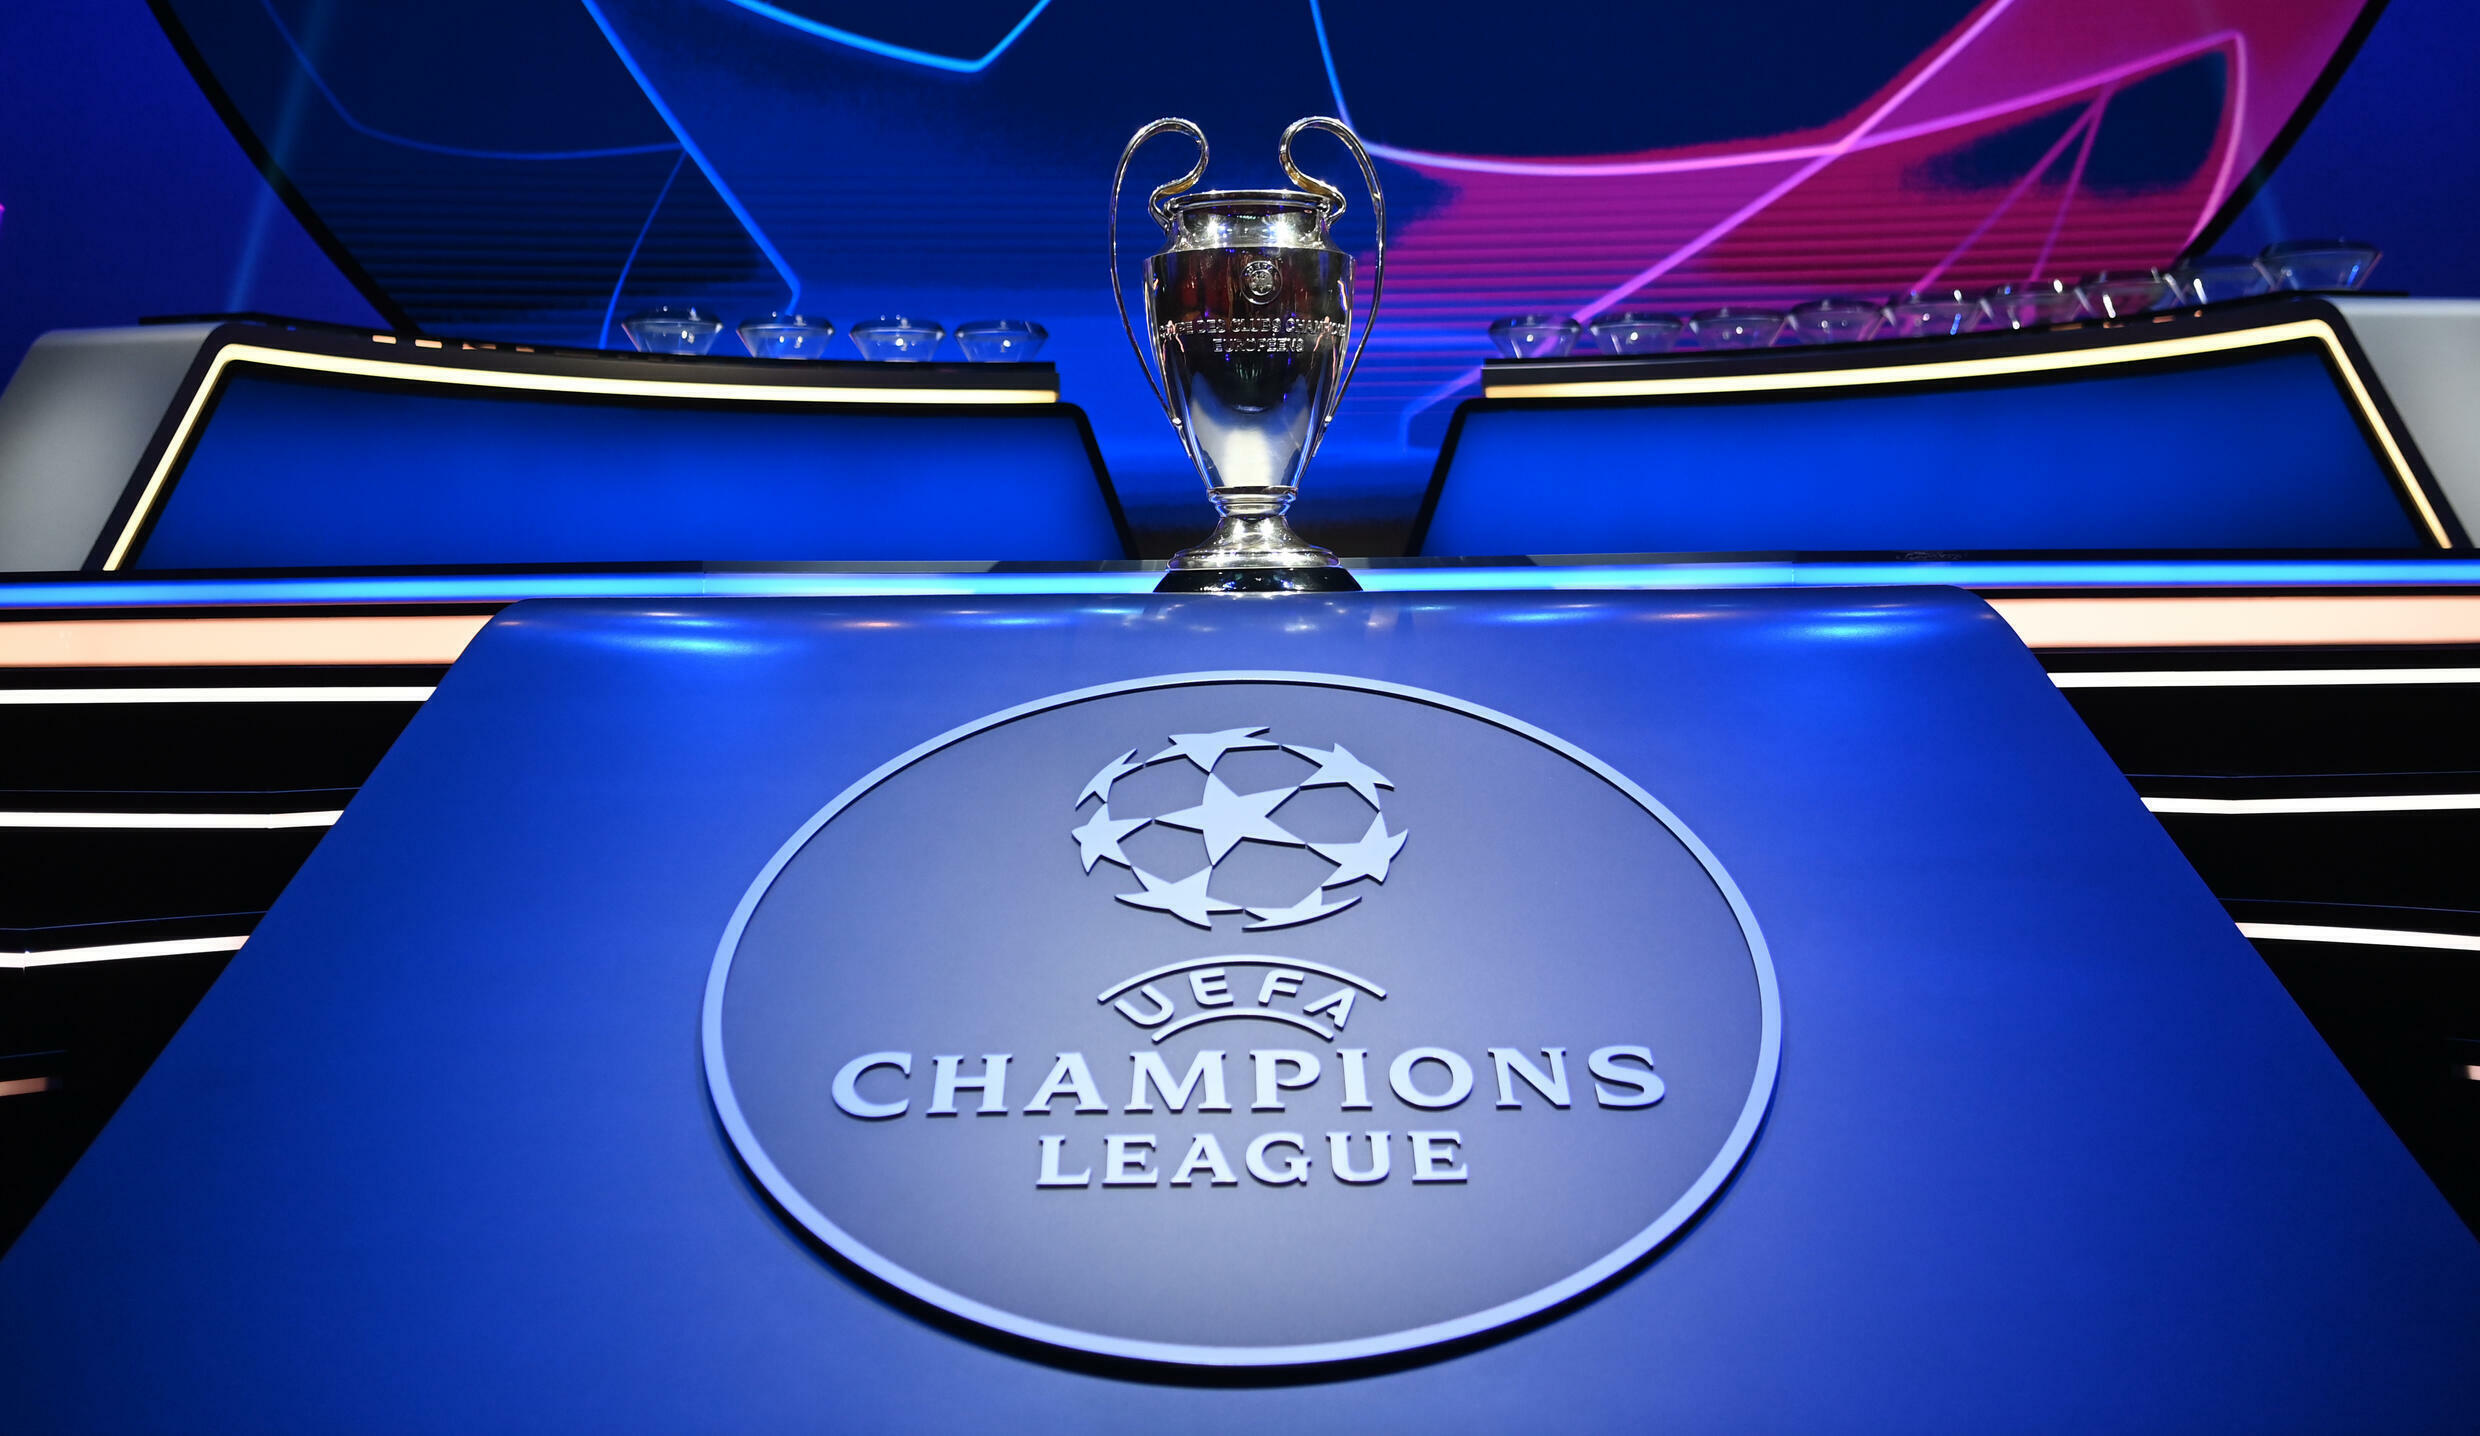 The Champions League group stage draw took place in Istanbul on Thursday